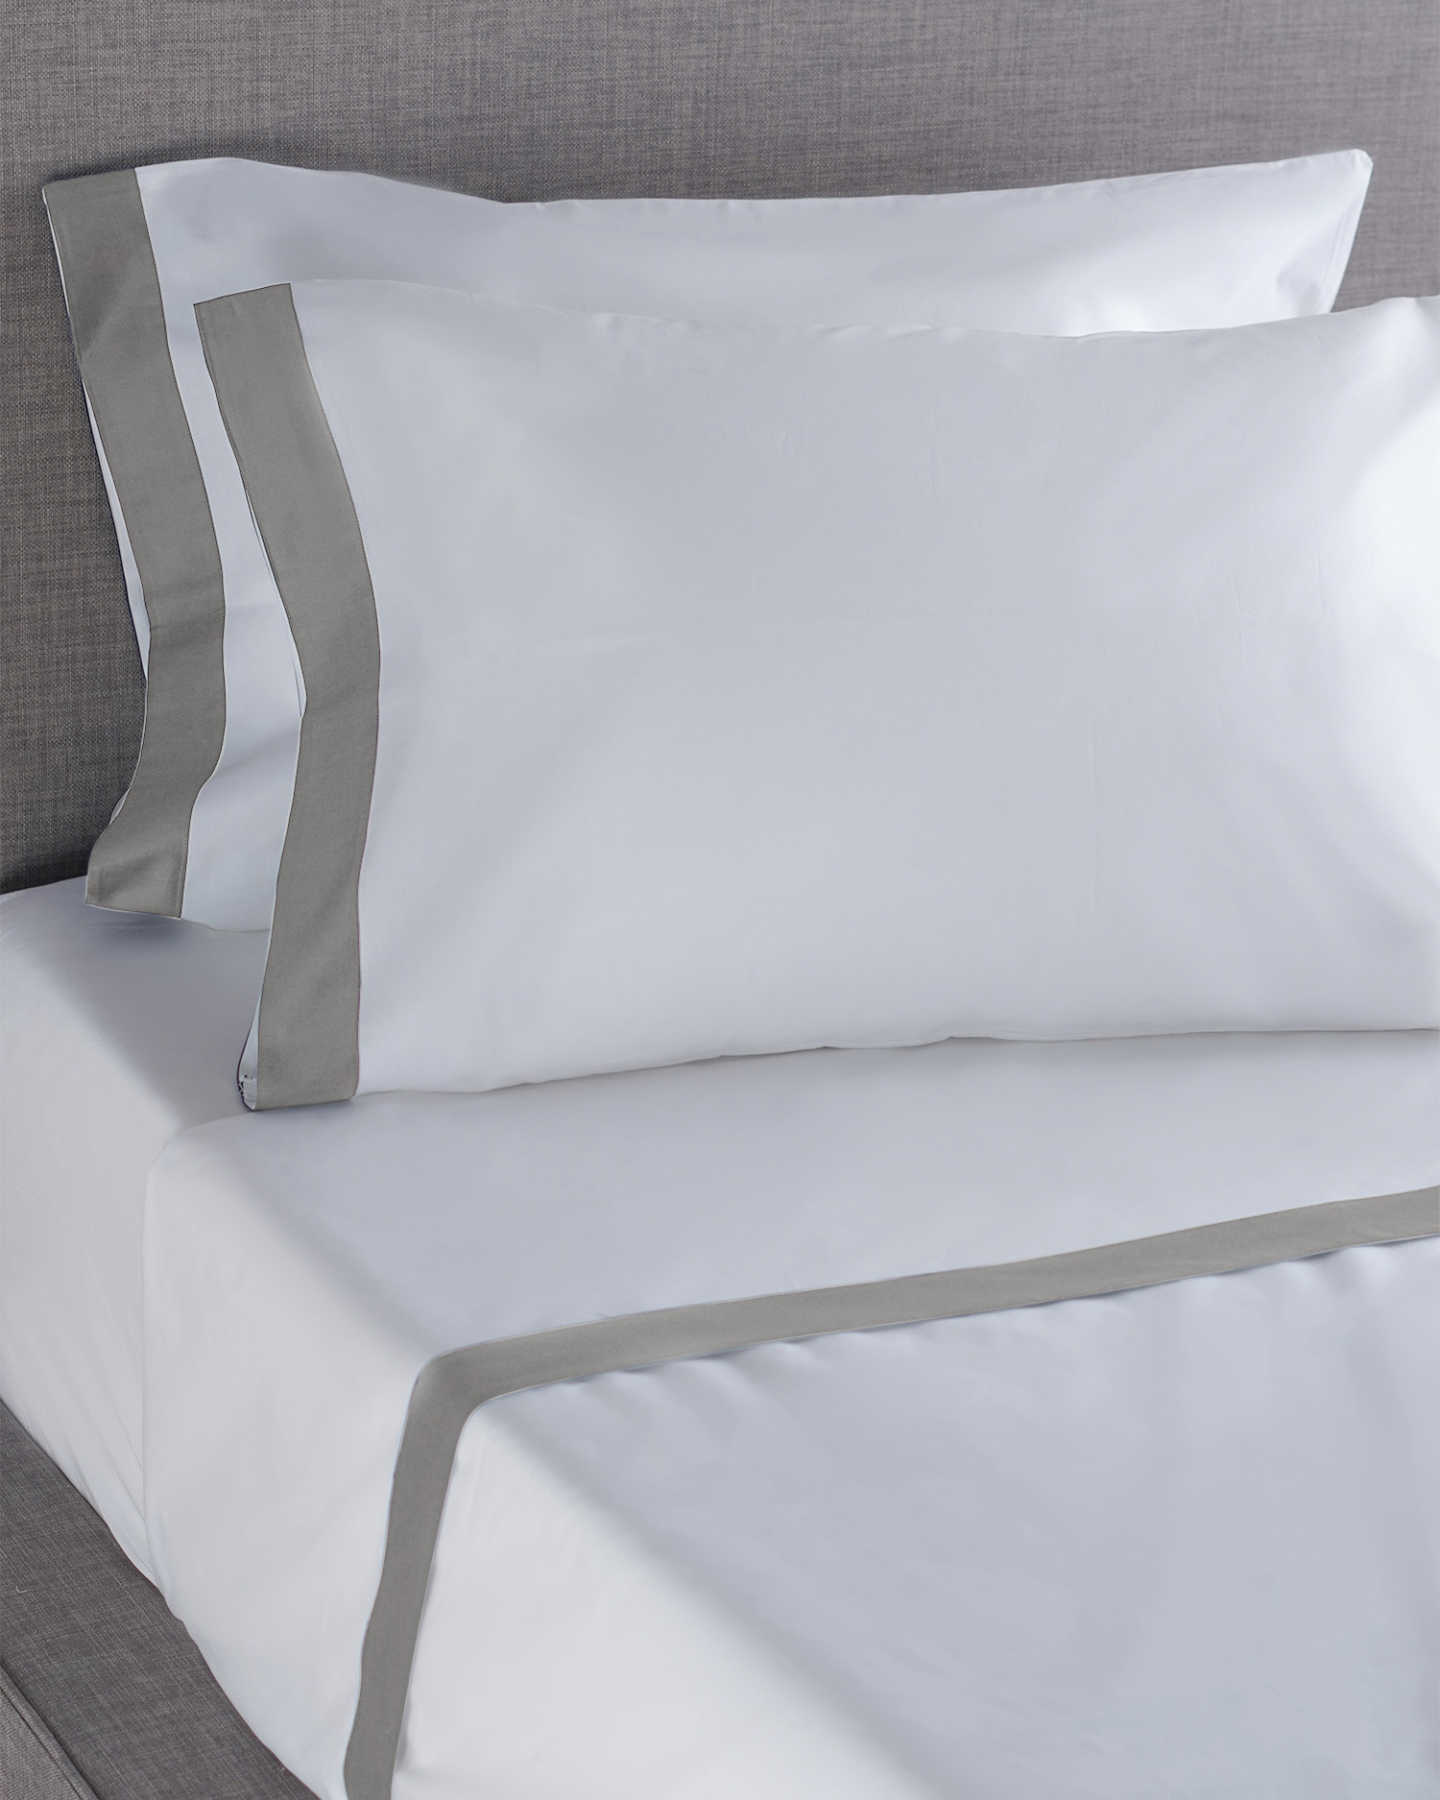 Luxe Italian Cotton Border Sheet Set - Grey